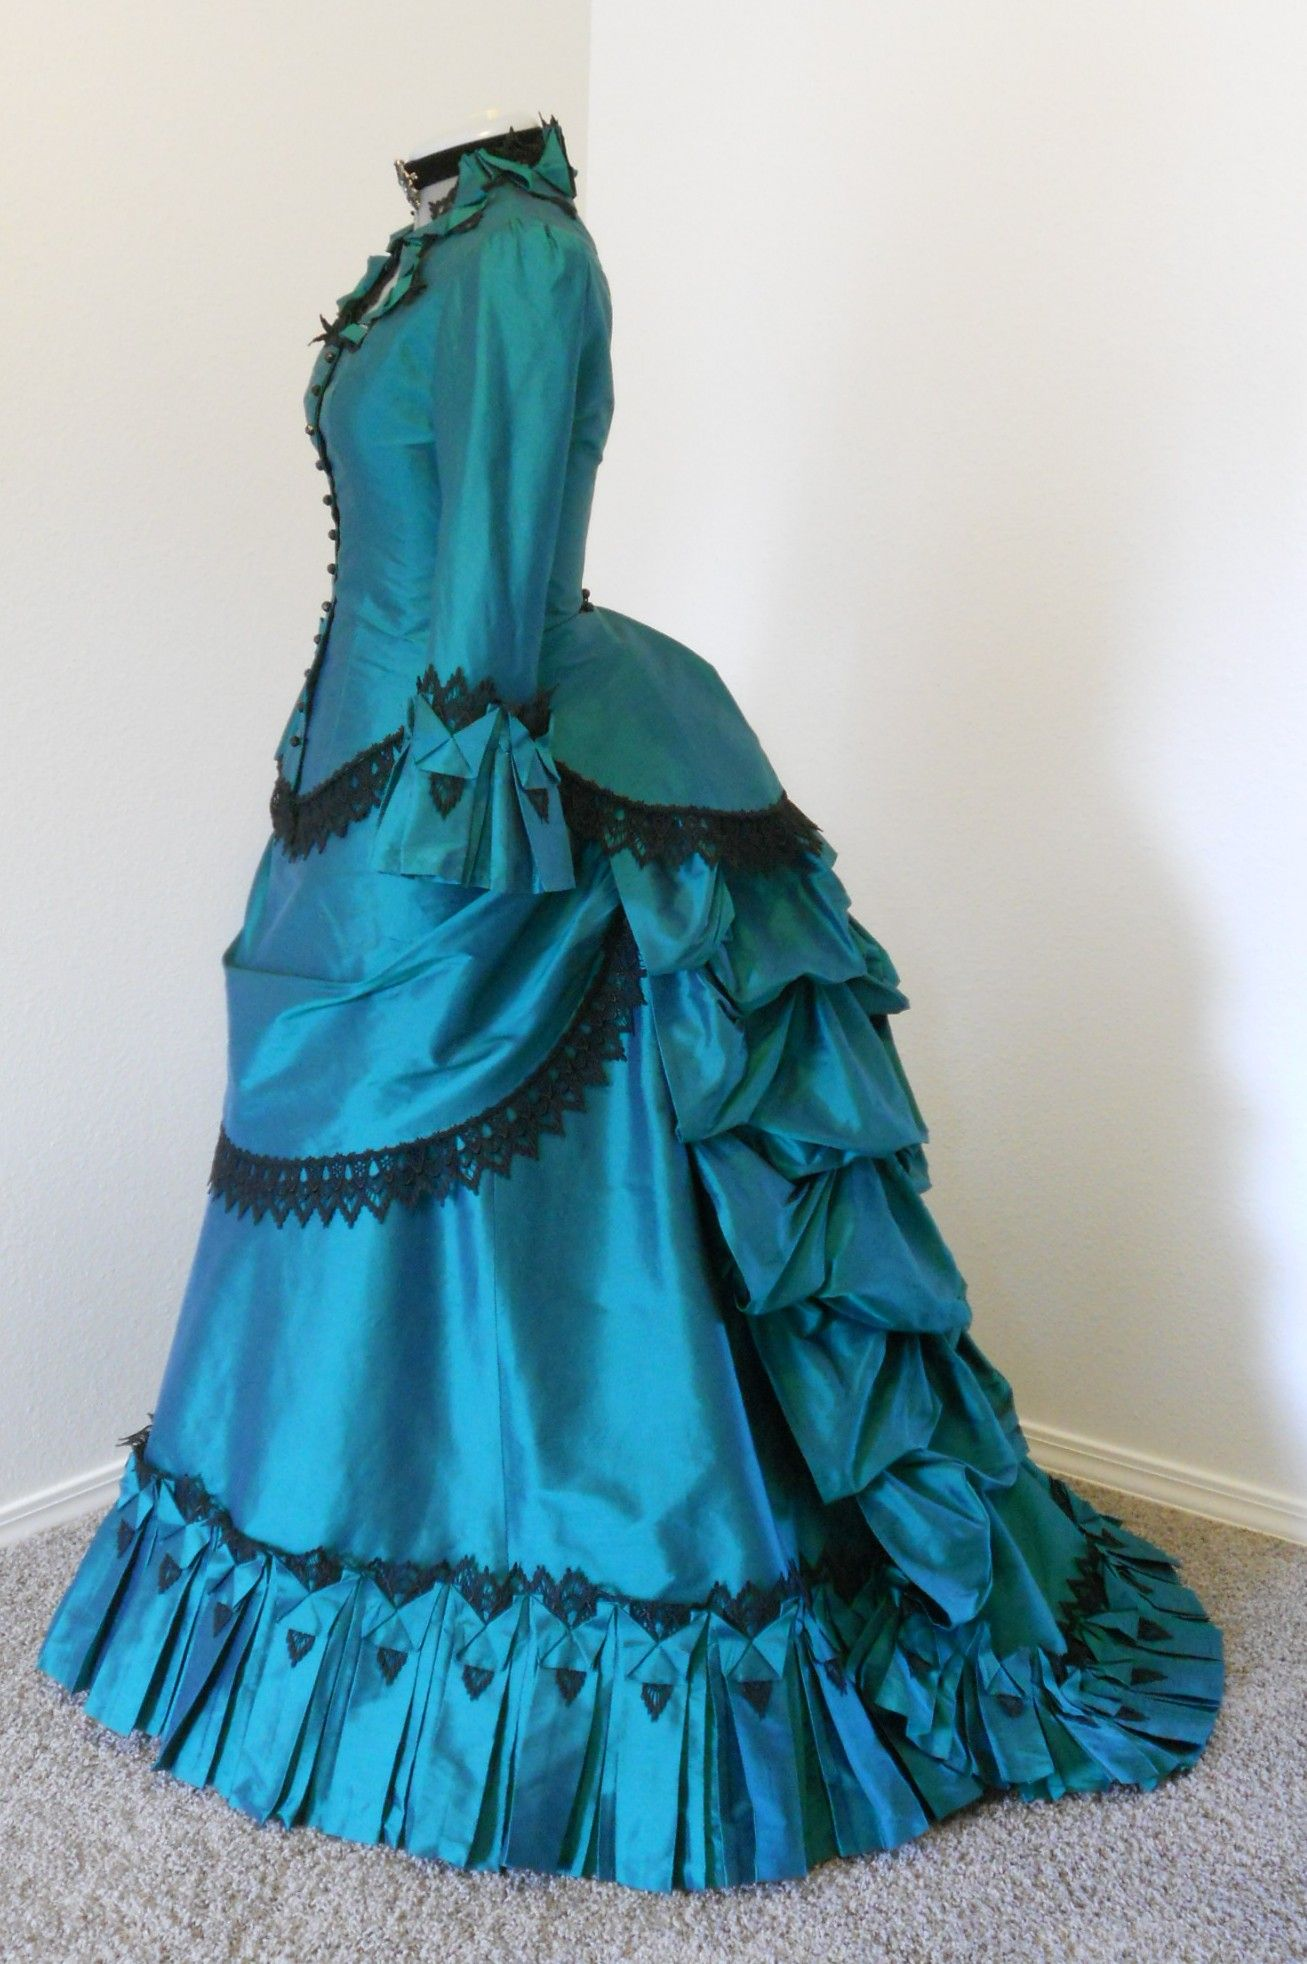 Sally c designs dress no 5024 bustle victorian and for Victorian bustle wedding dress